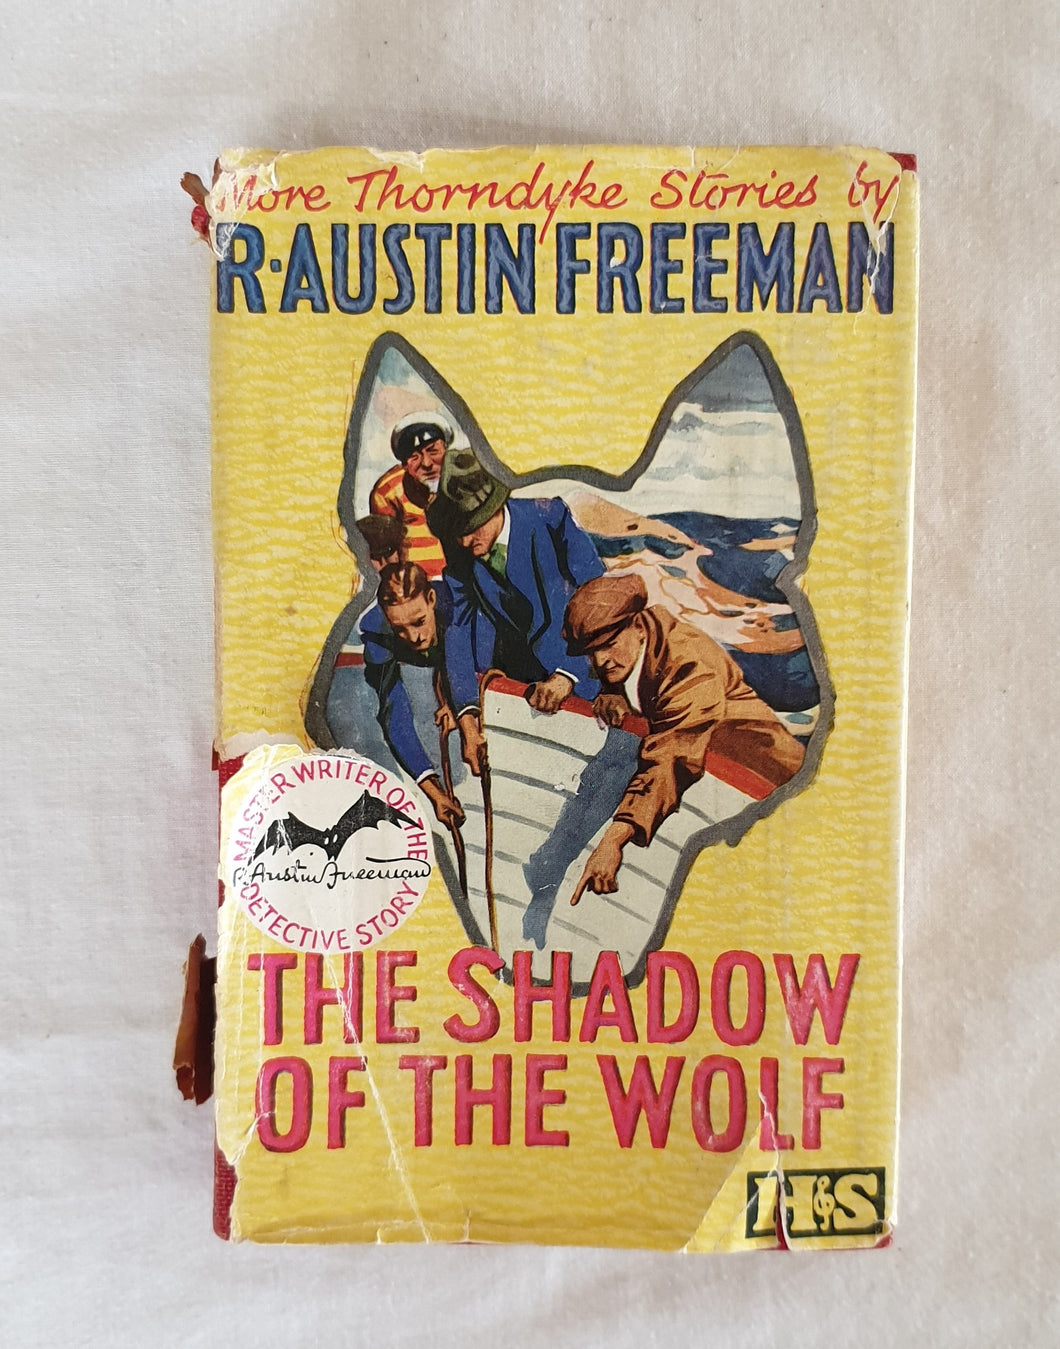 The Shadow of the Wolf by R. Austin Freeman